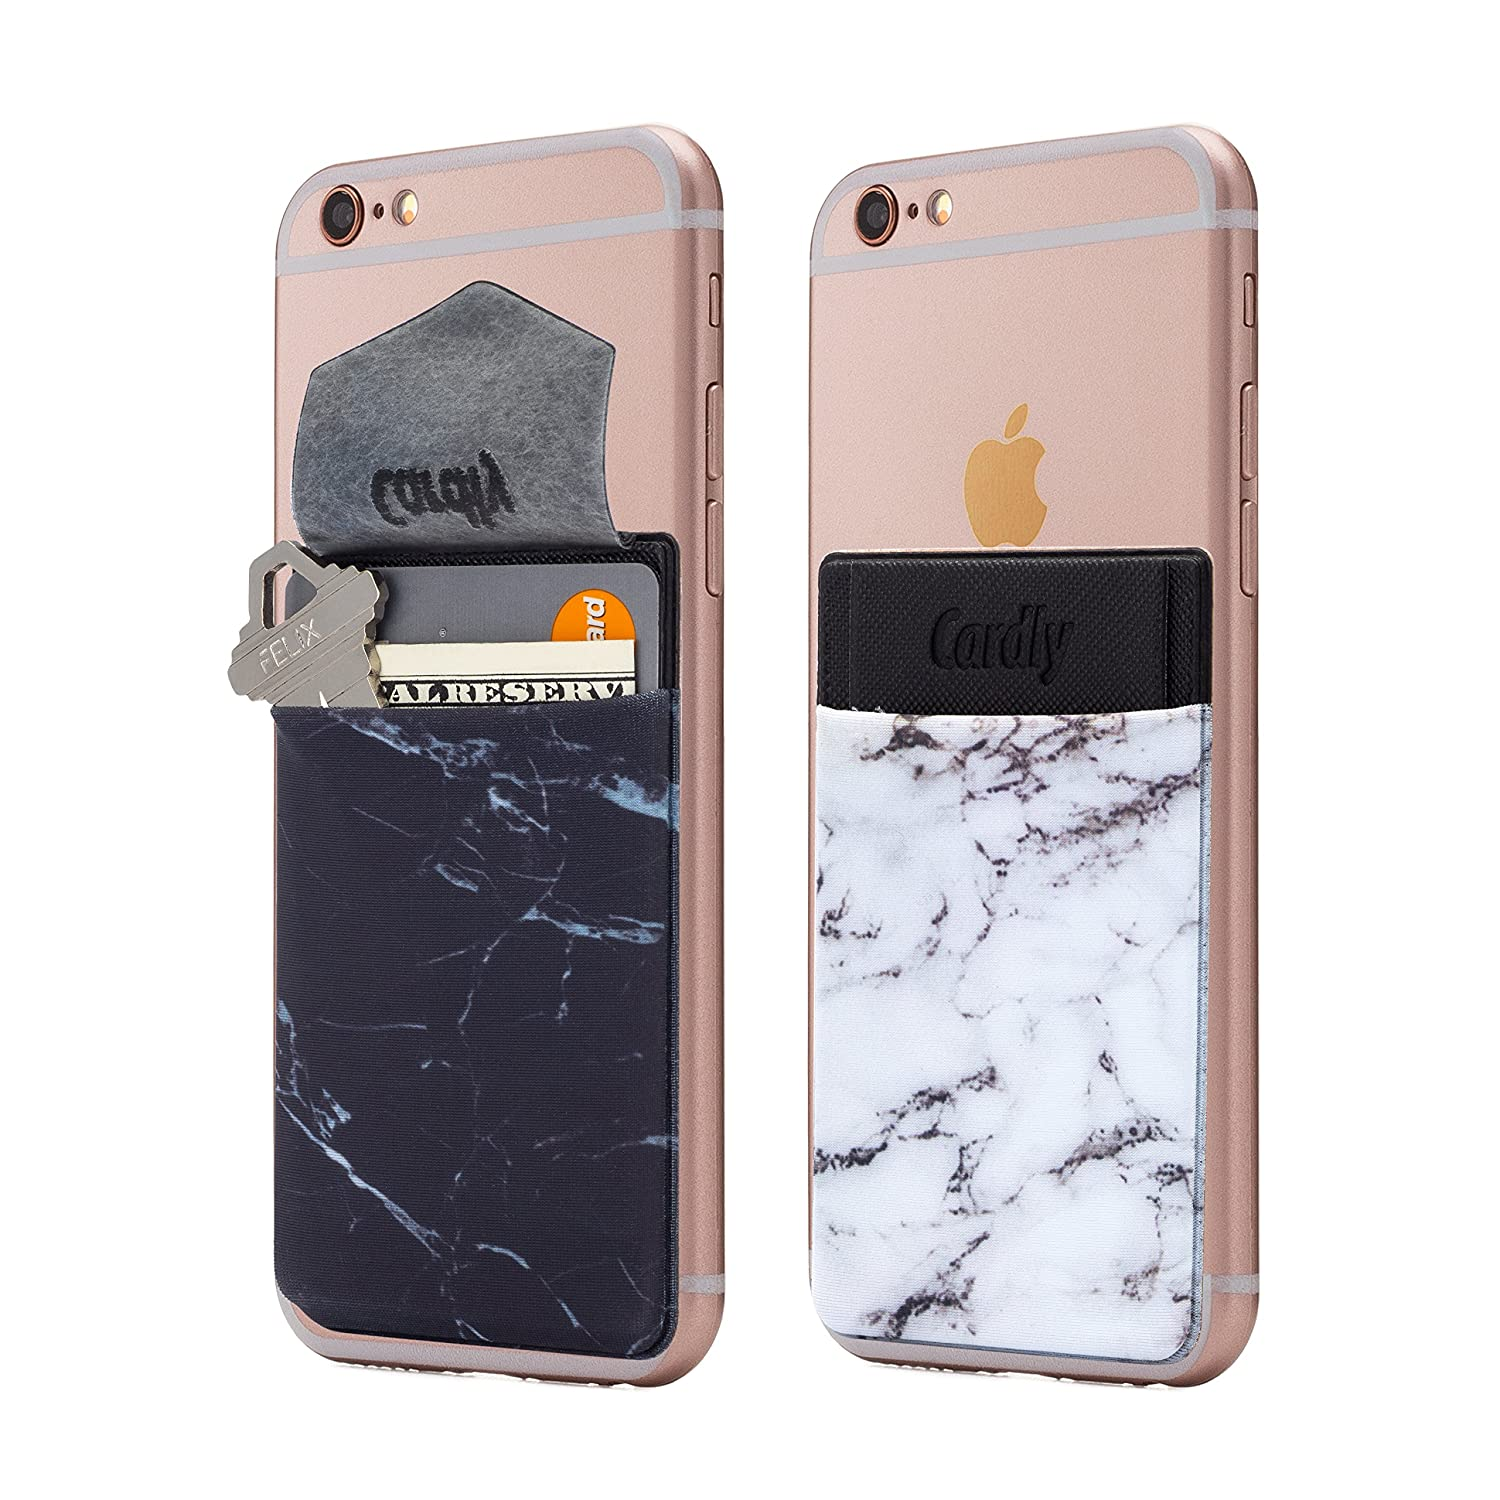 (Two) Secure Marble Cell Phone Stick On Wallet Card Holder Phone Pocket for iPhone, Android and All Smartphones. (Black and White) Cardly